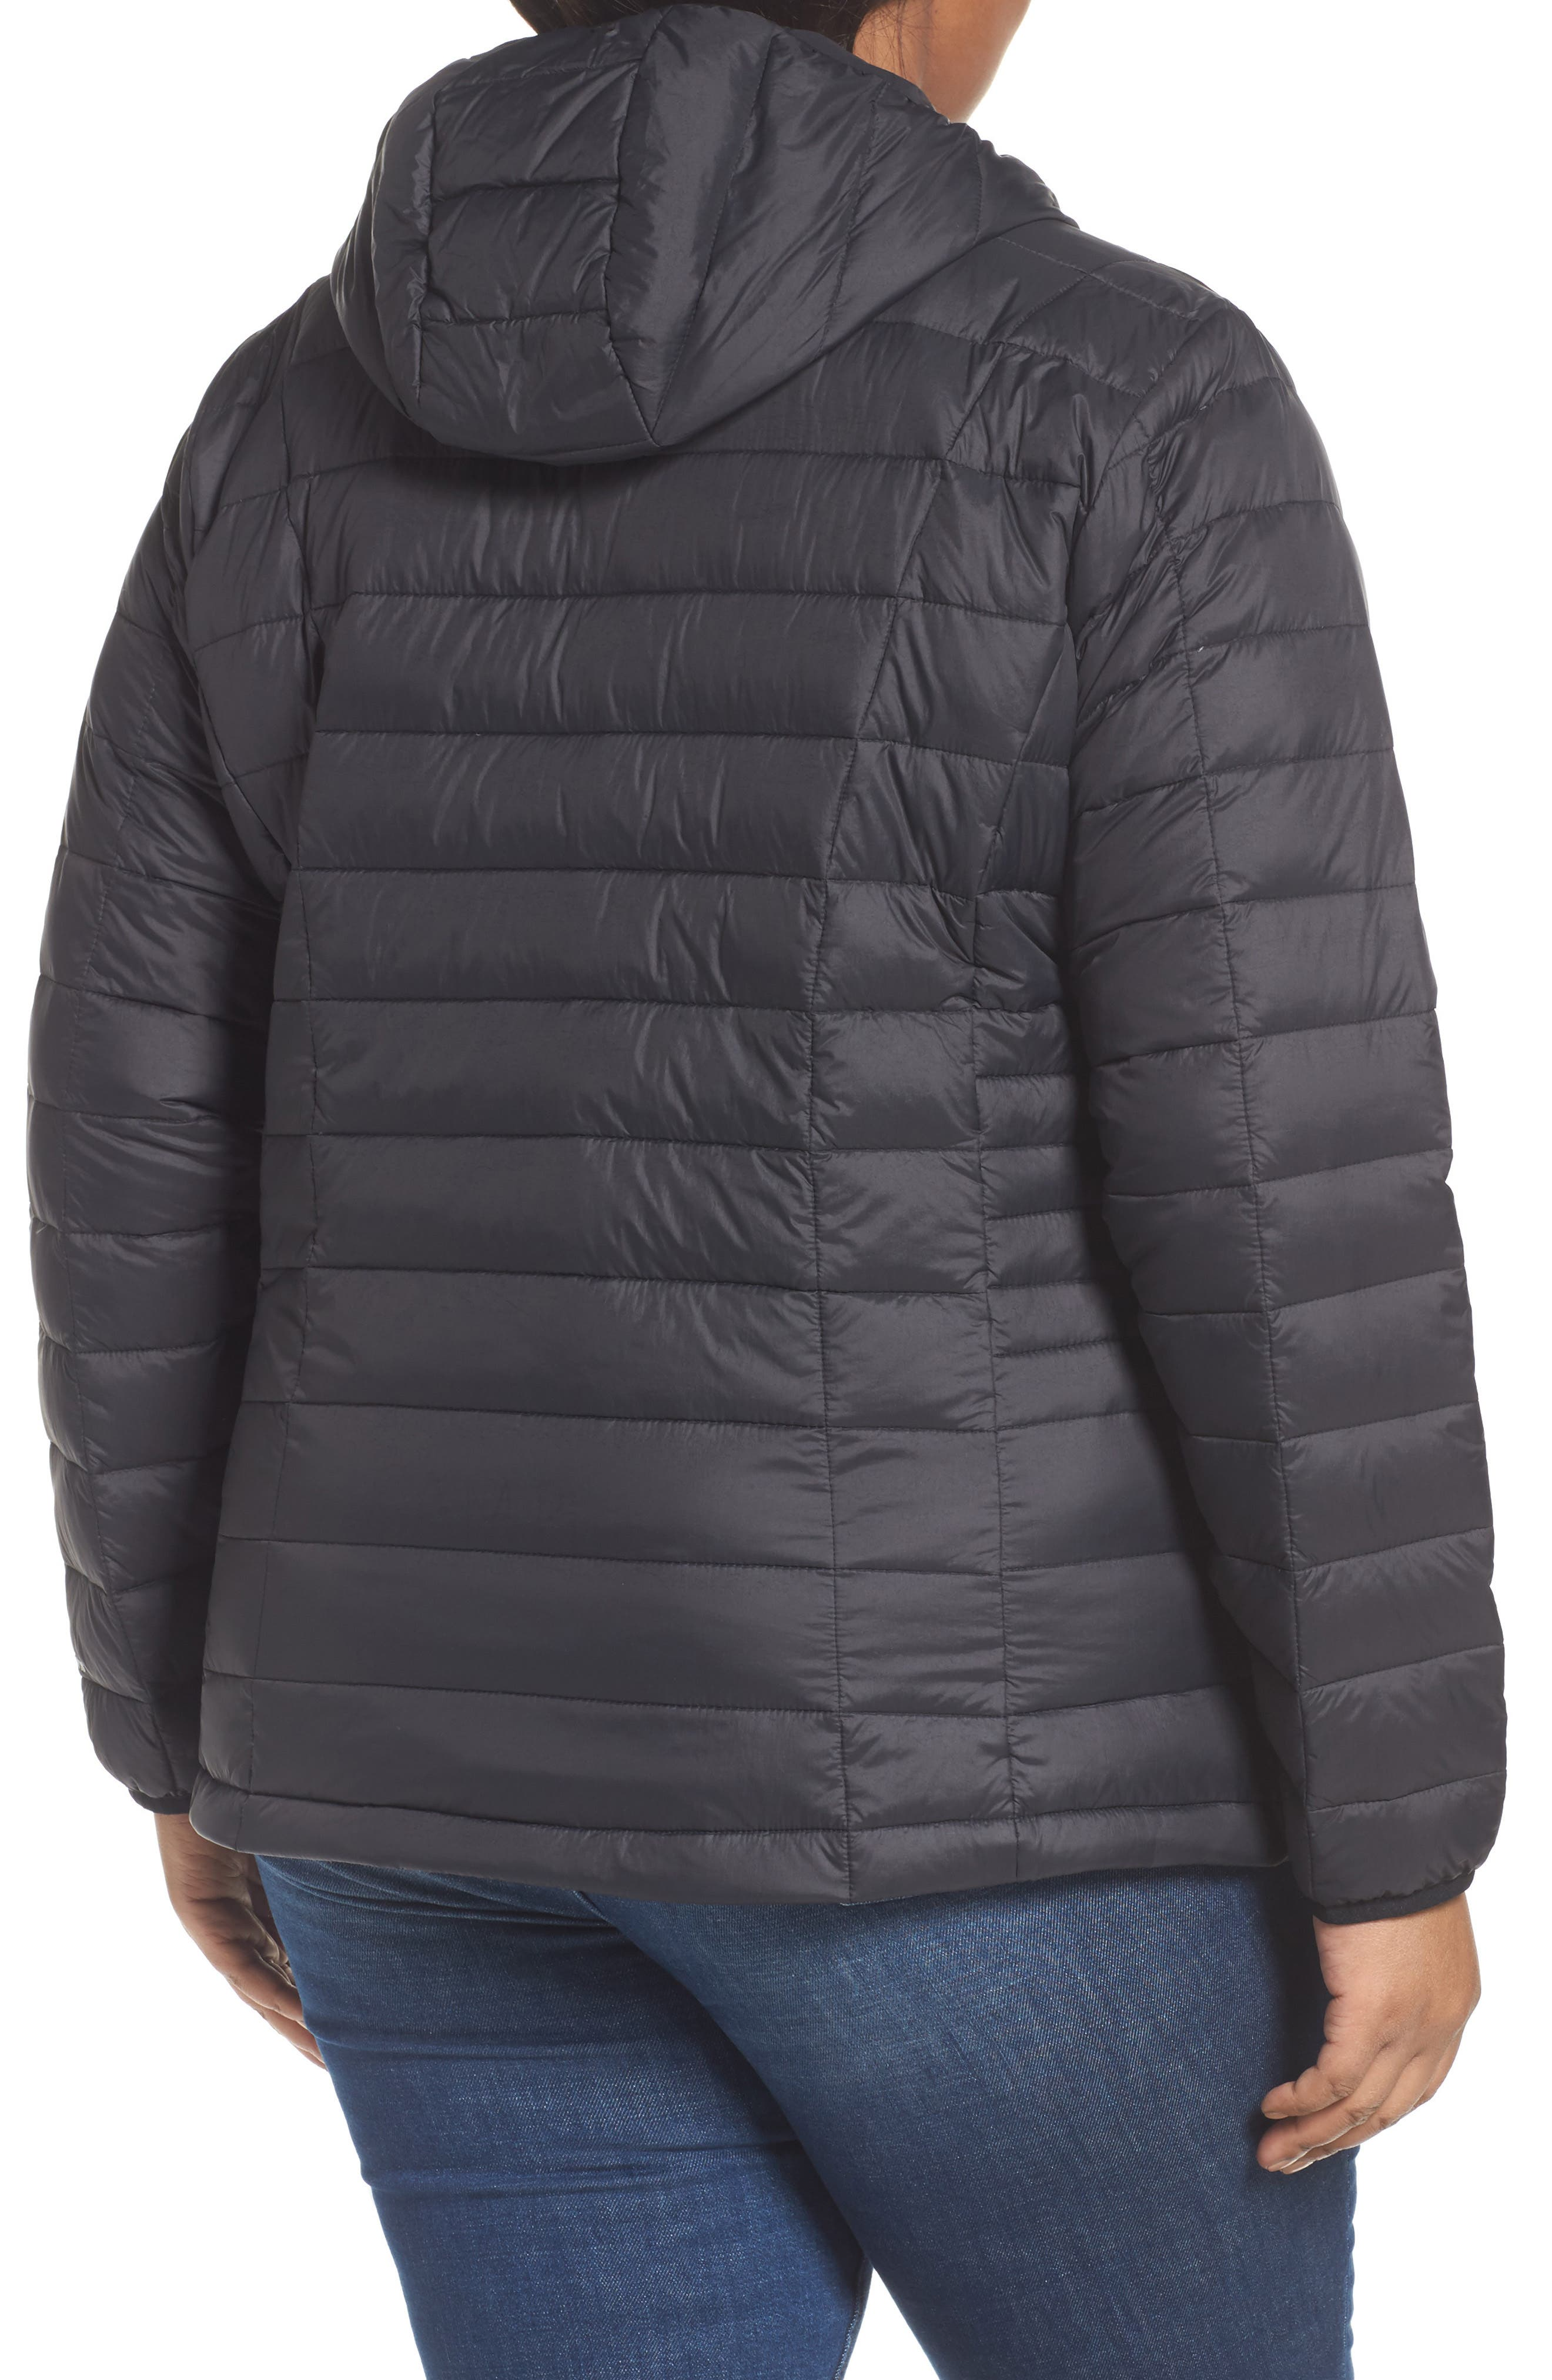 Voodoo Falls 590 Turbodown<sup>™</sup> Down Jacket,                             Alternate thumbnail 2, color,                             010